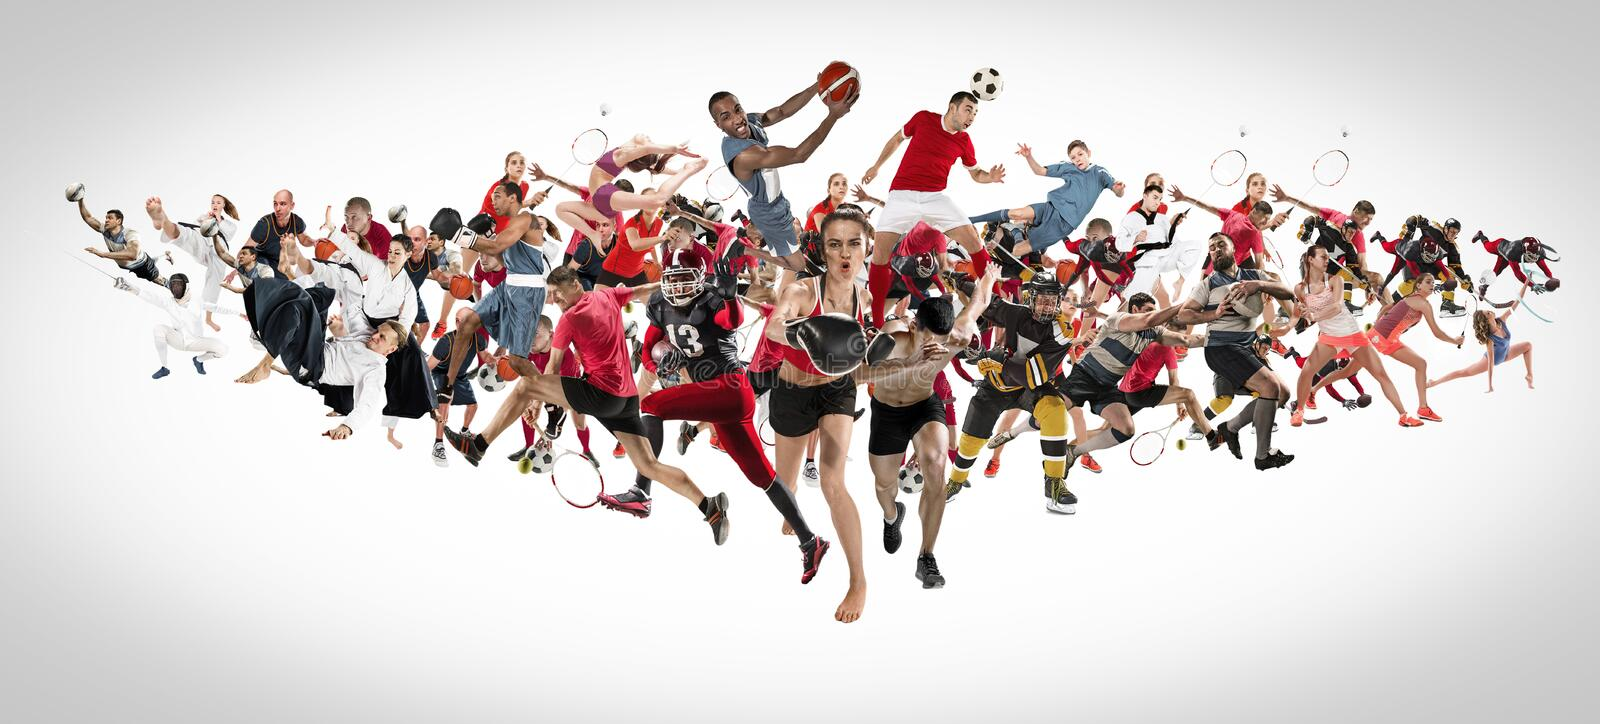 Sport collage about kickboxing, soccer, american football, basketball, ice hockey, badminton, taekwondo, tennis, rugby royalty free stock image